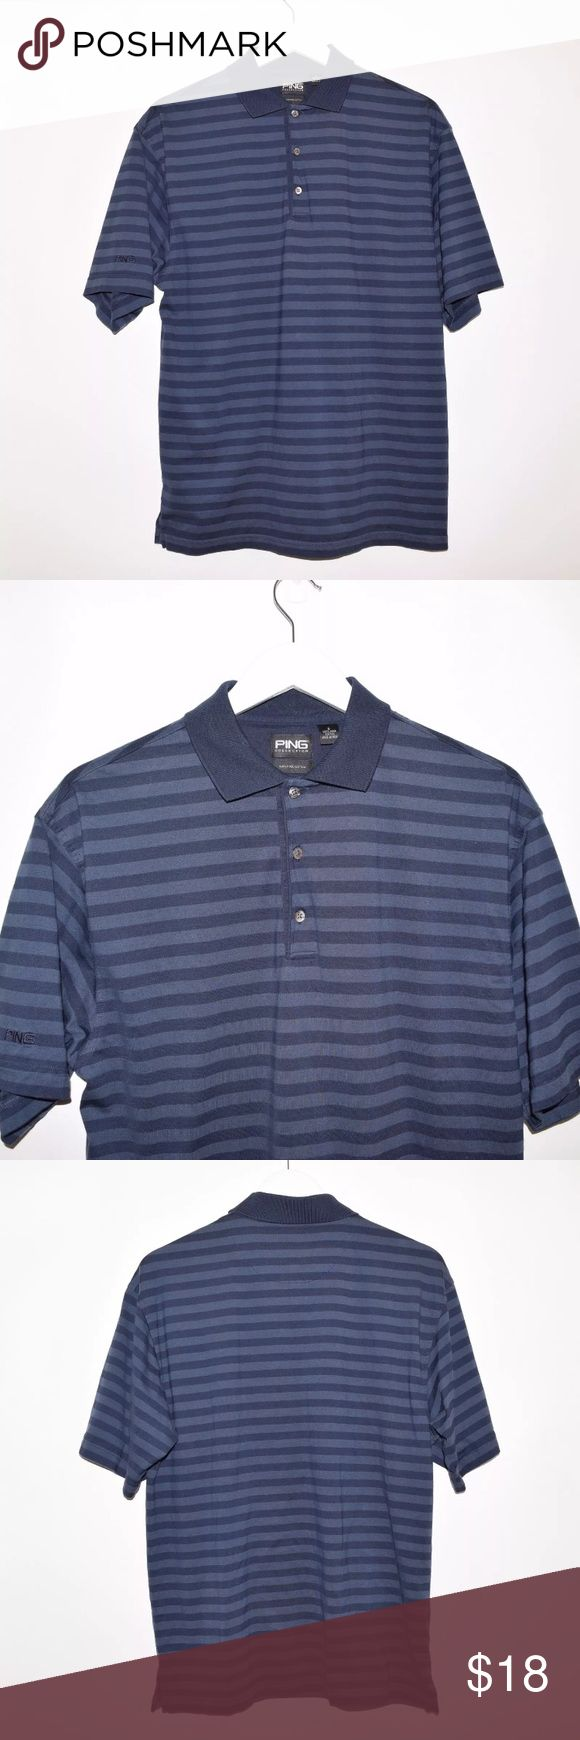 PING Pima Cotton Striped Golf Polo Shirt Brand: PING Item name: Men's Pima Cotton Striped Golf Polo Shirt   Color: Blue Condition: This is a pre-owned item. It is in excellent condition with no stains, rips, holes, etc. Comes from a smoke free household. Size: Small Measurements laying flat: Pit to pit - 21 inches Neckline to base - 27 inches PING Shirts Polos